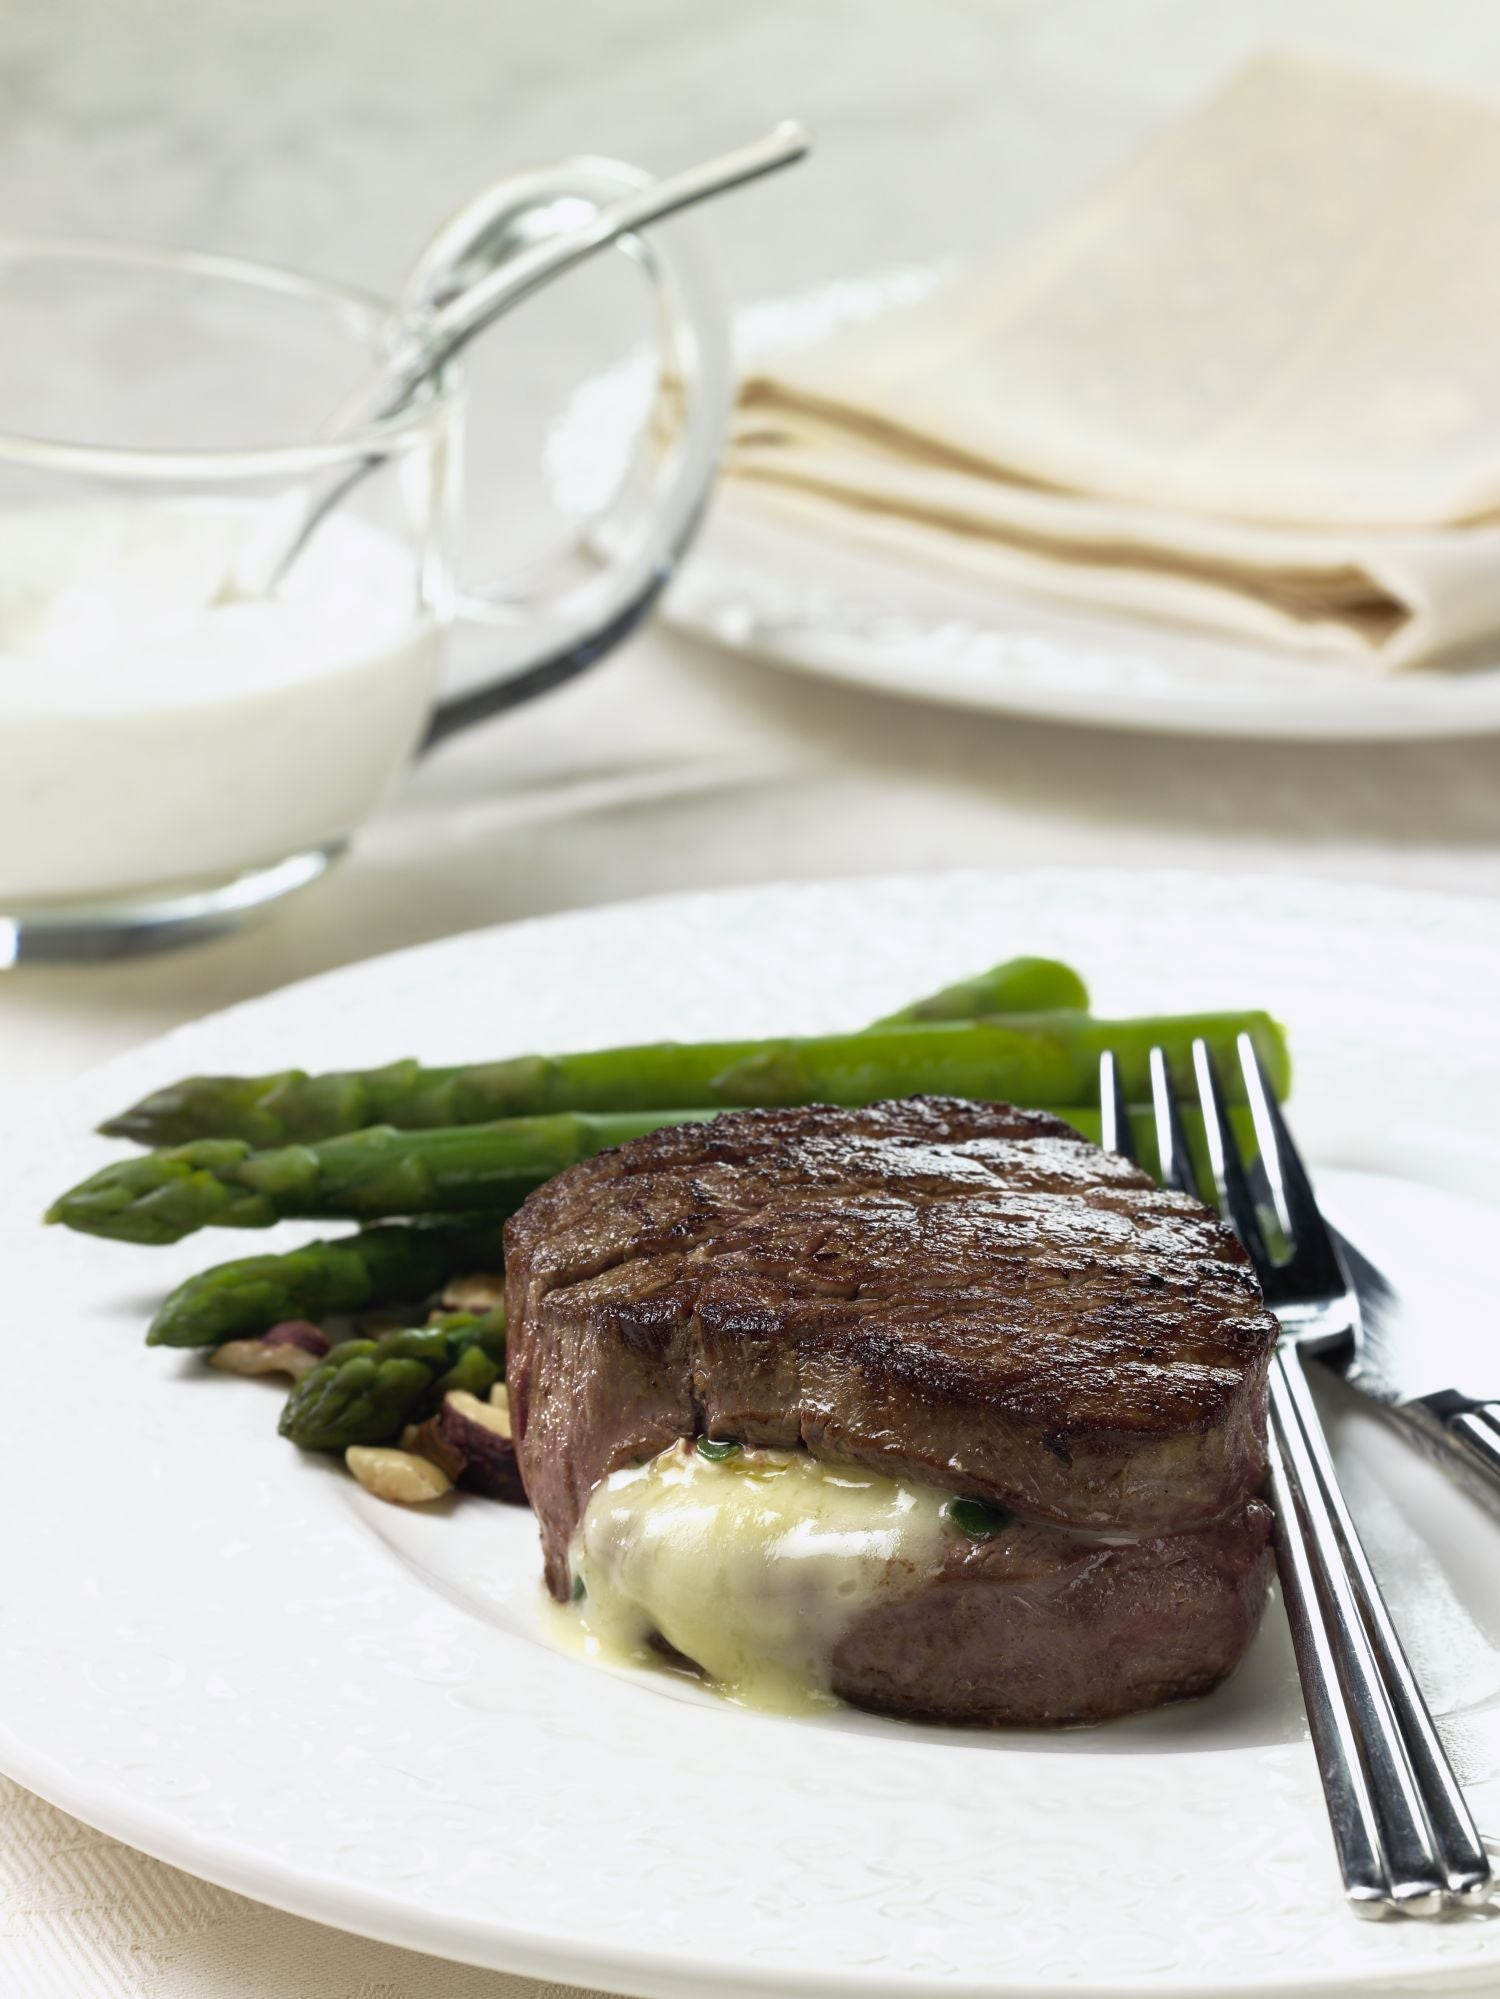 Brie-Filled Australian Beef Tenderloin with Horseradish Cream and Asparagus